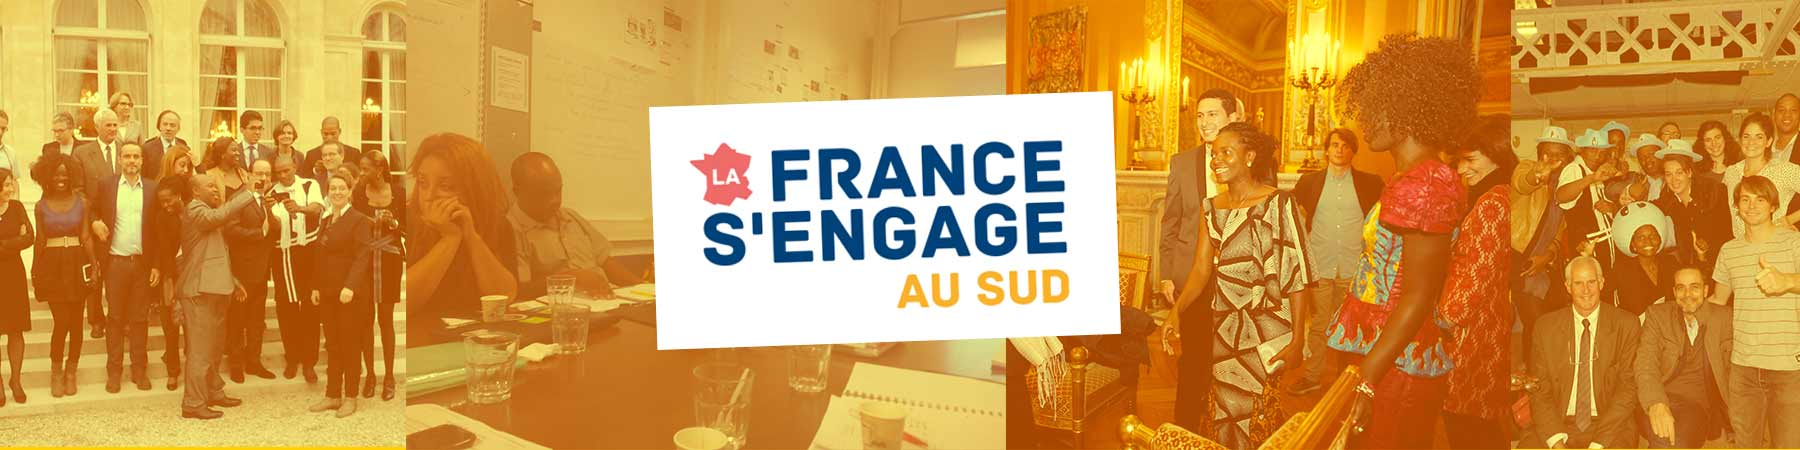 Poster   partnership   la france s engage au sud